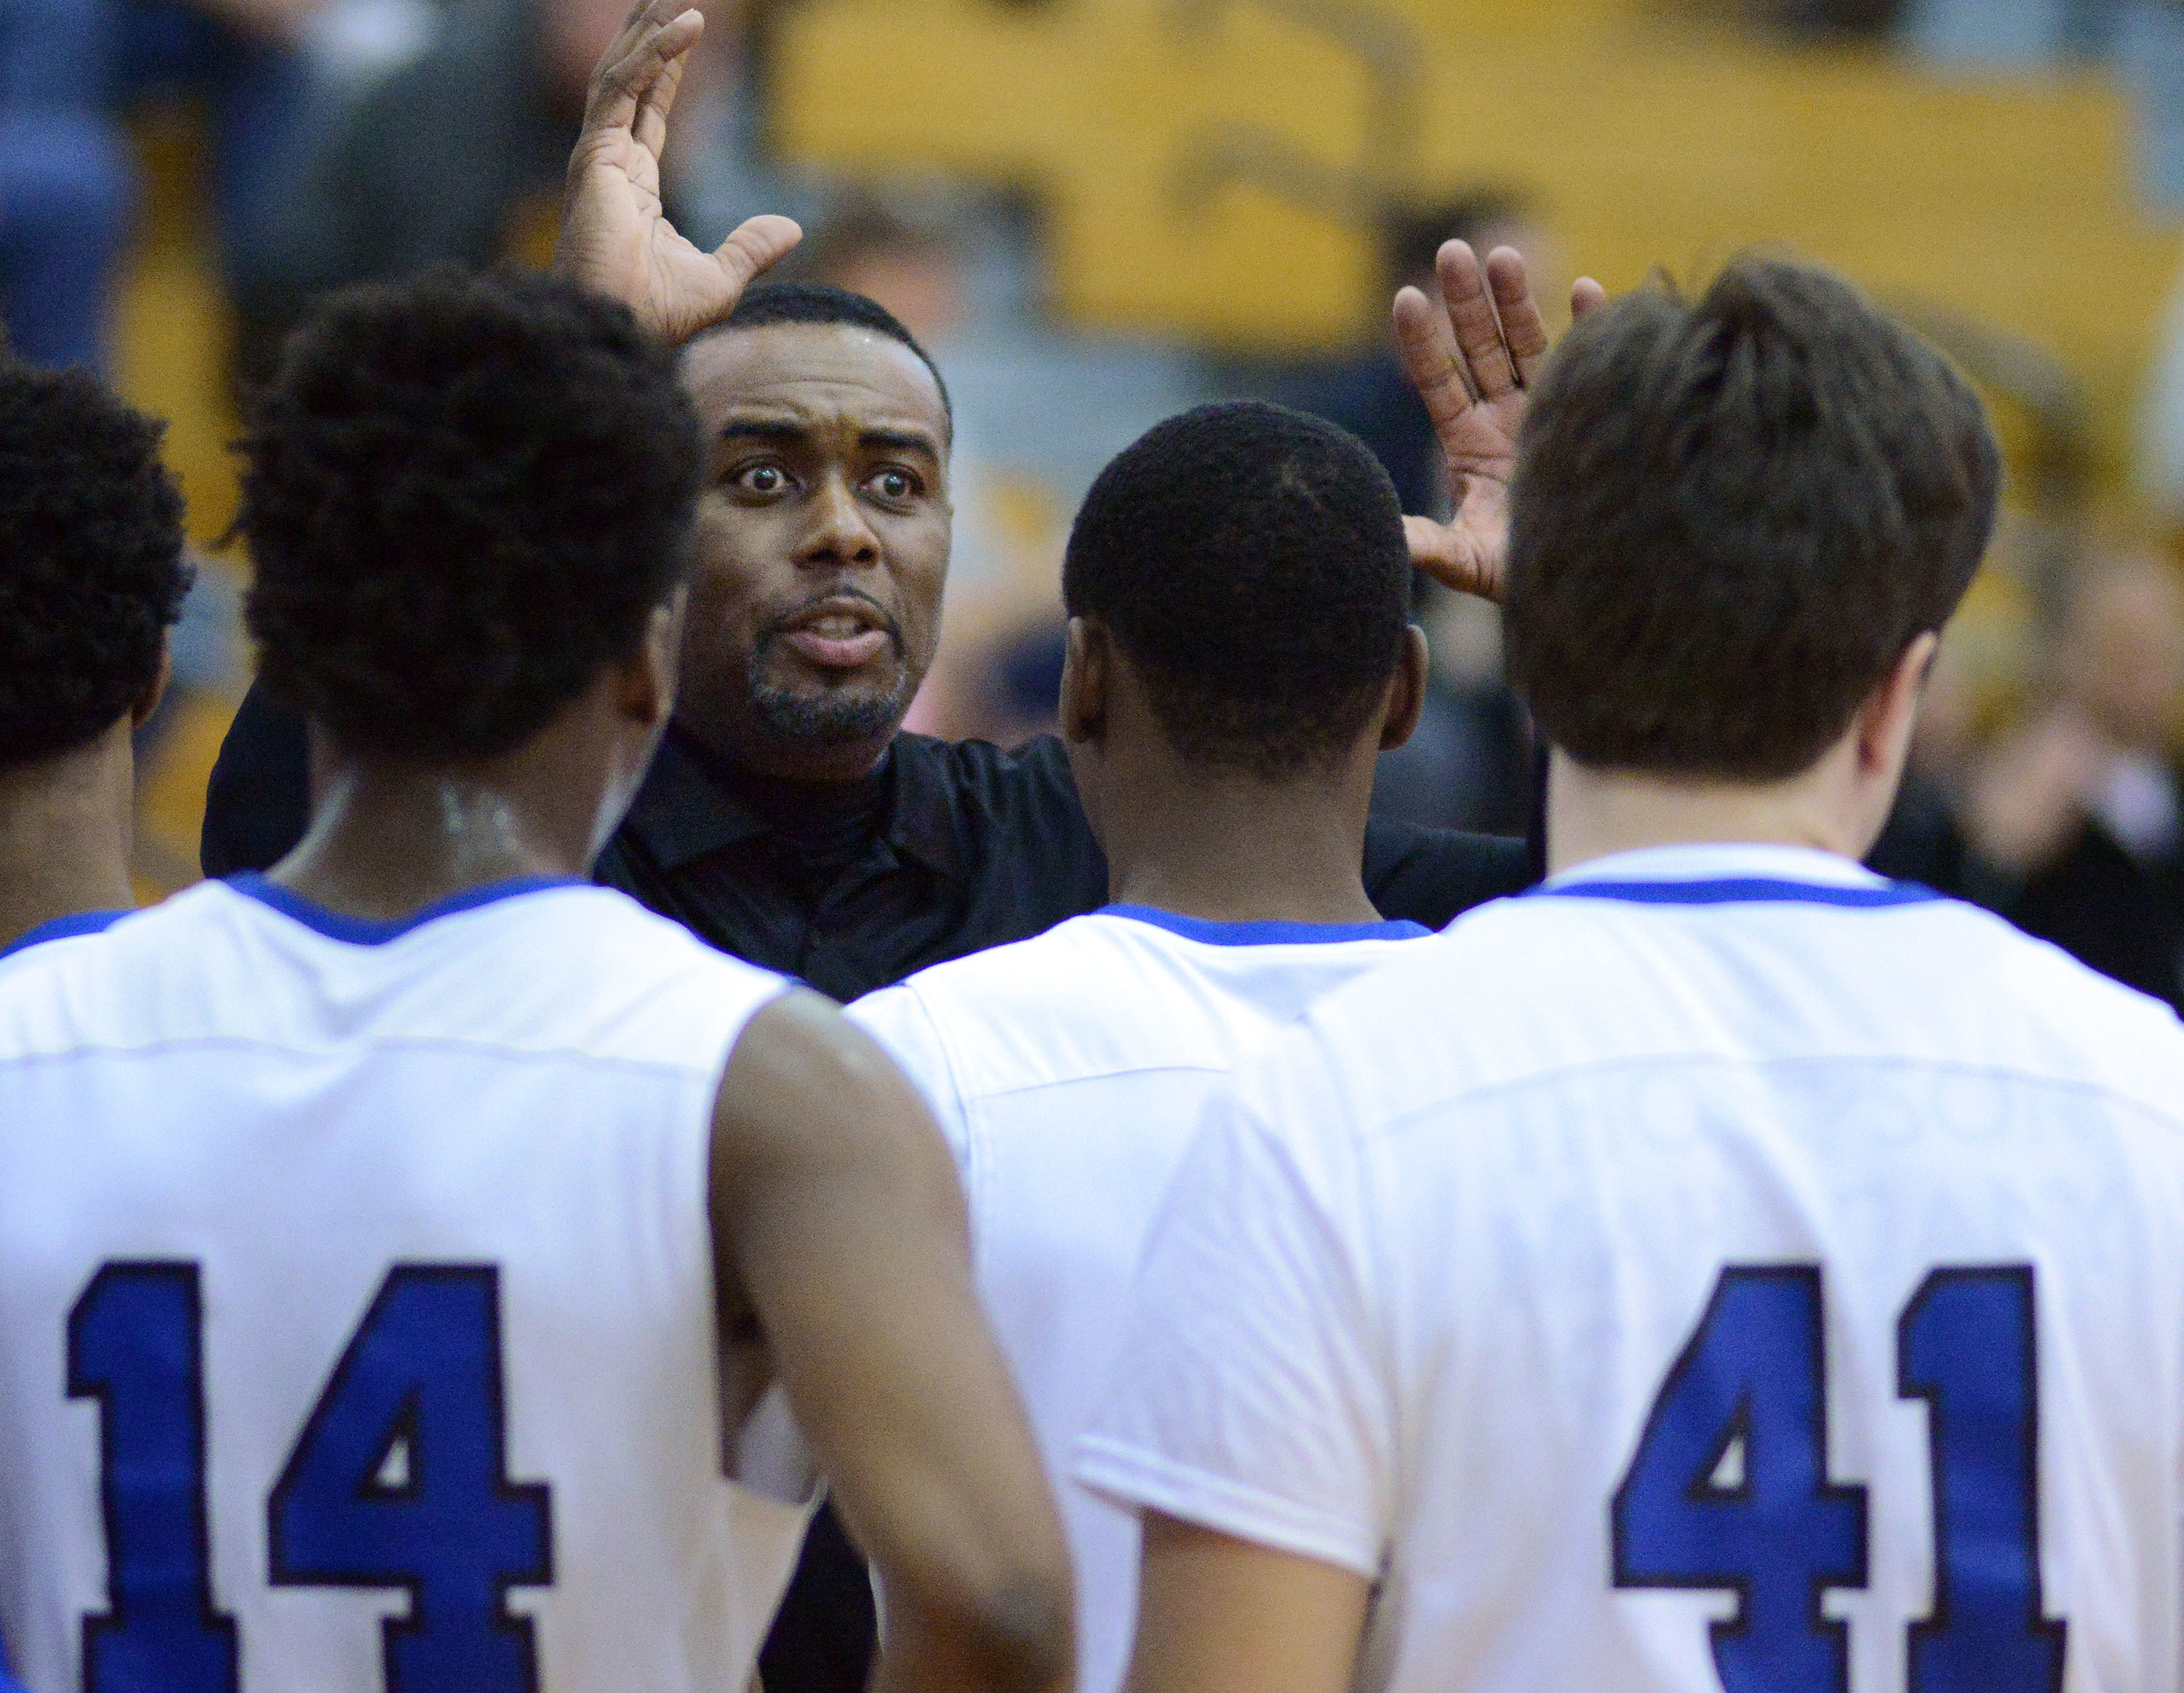 Bryan Caver talks to the Conwell-Egan players during a timeout in a PIAA Class 4A state playoff game against Bethlehem Catholic last season.